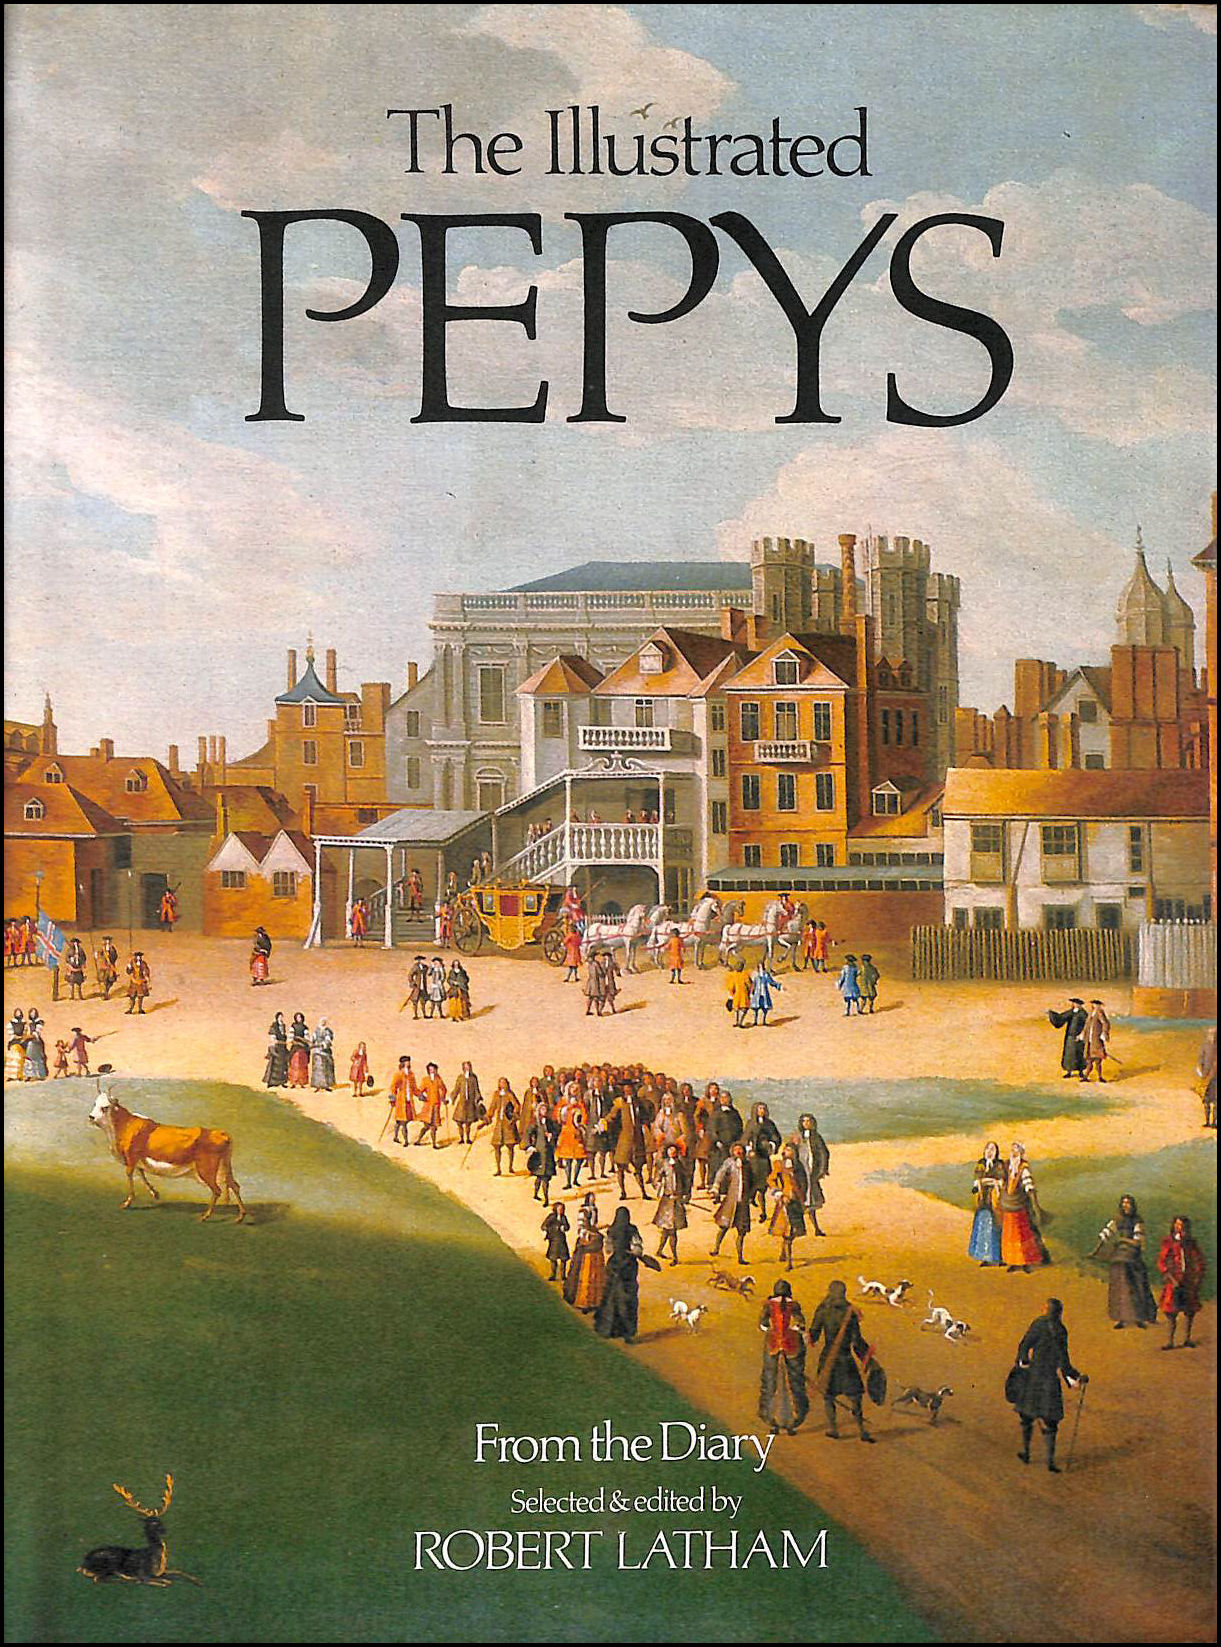 The Illustrated Pepys. Extracts From The Diary, Robert Latham